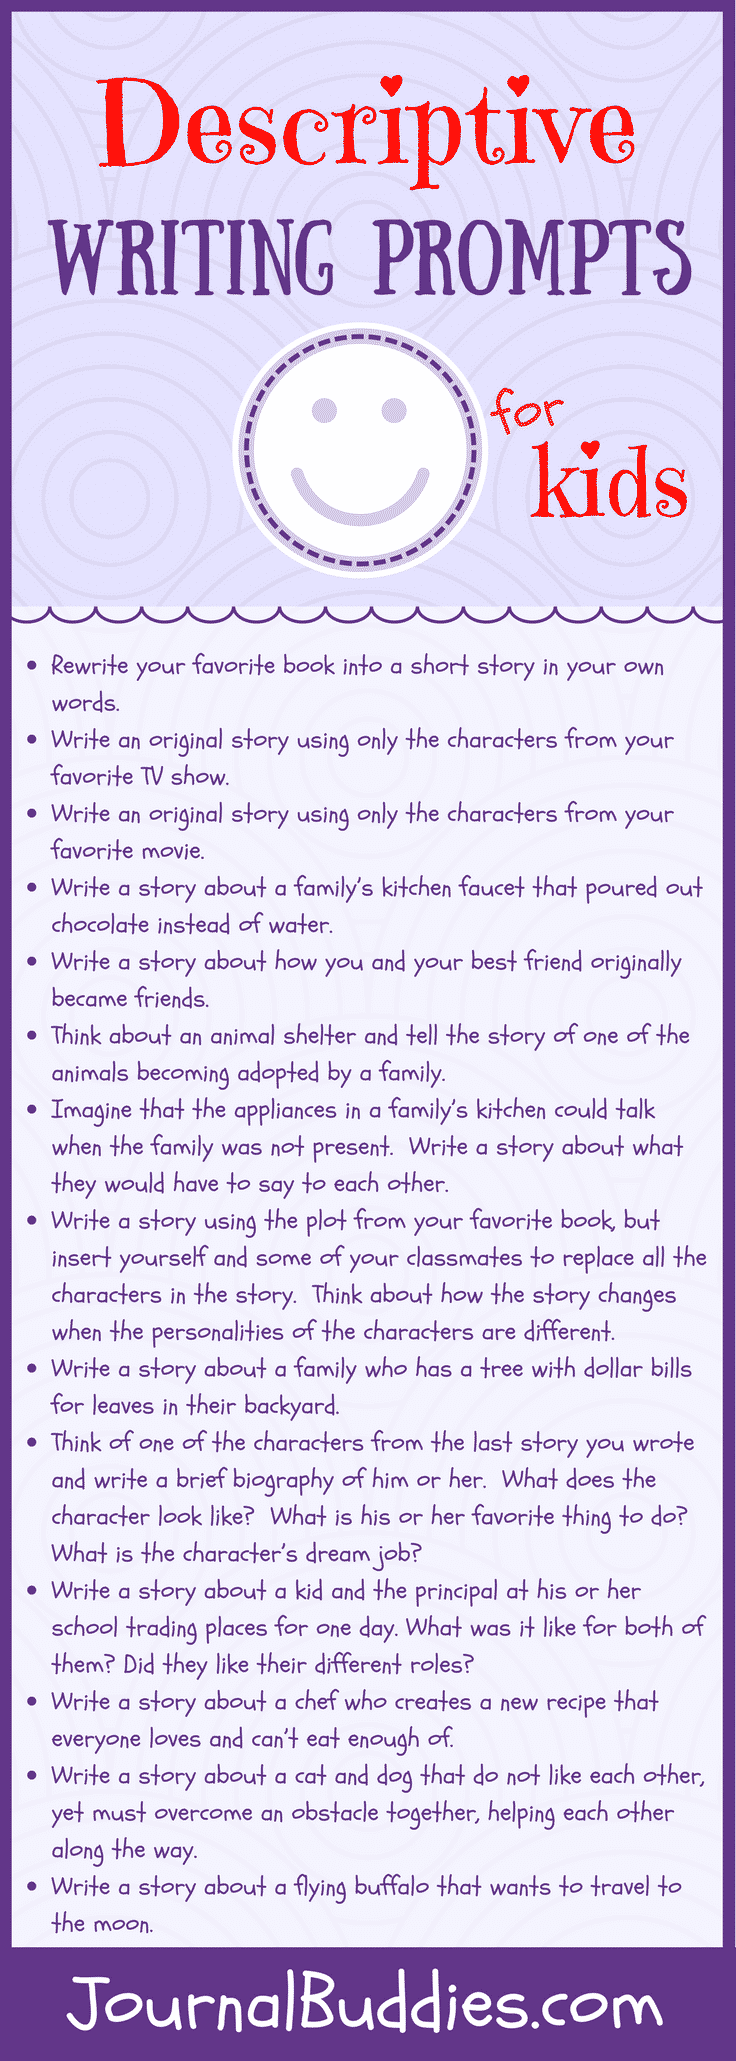 Writing Prompts for Storytelling